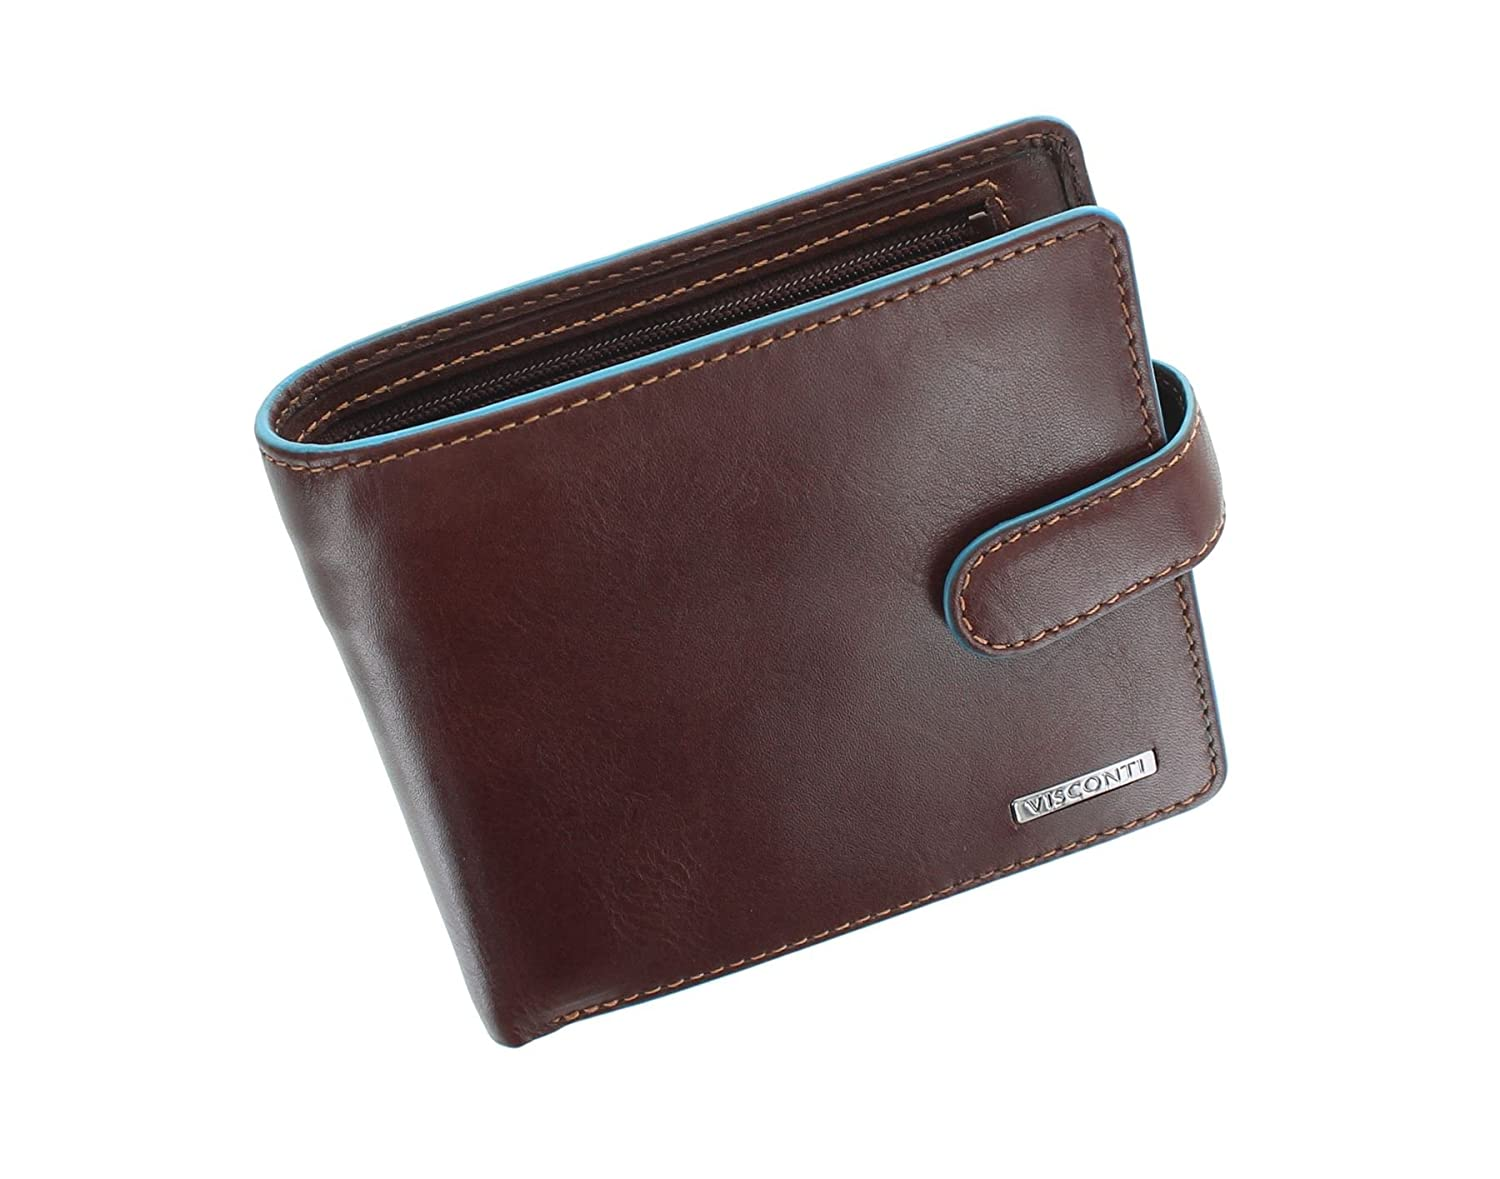 Visconti Alps Collection TOM Bi-Fold Leather Wallet With RFID Protection - ALP86 Black